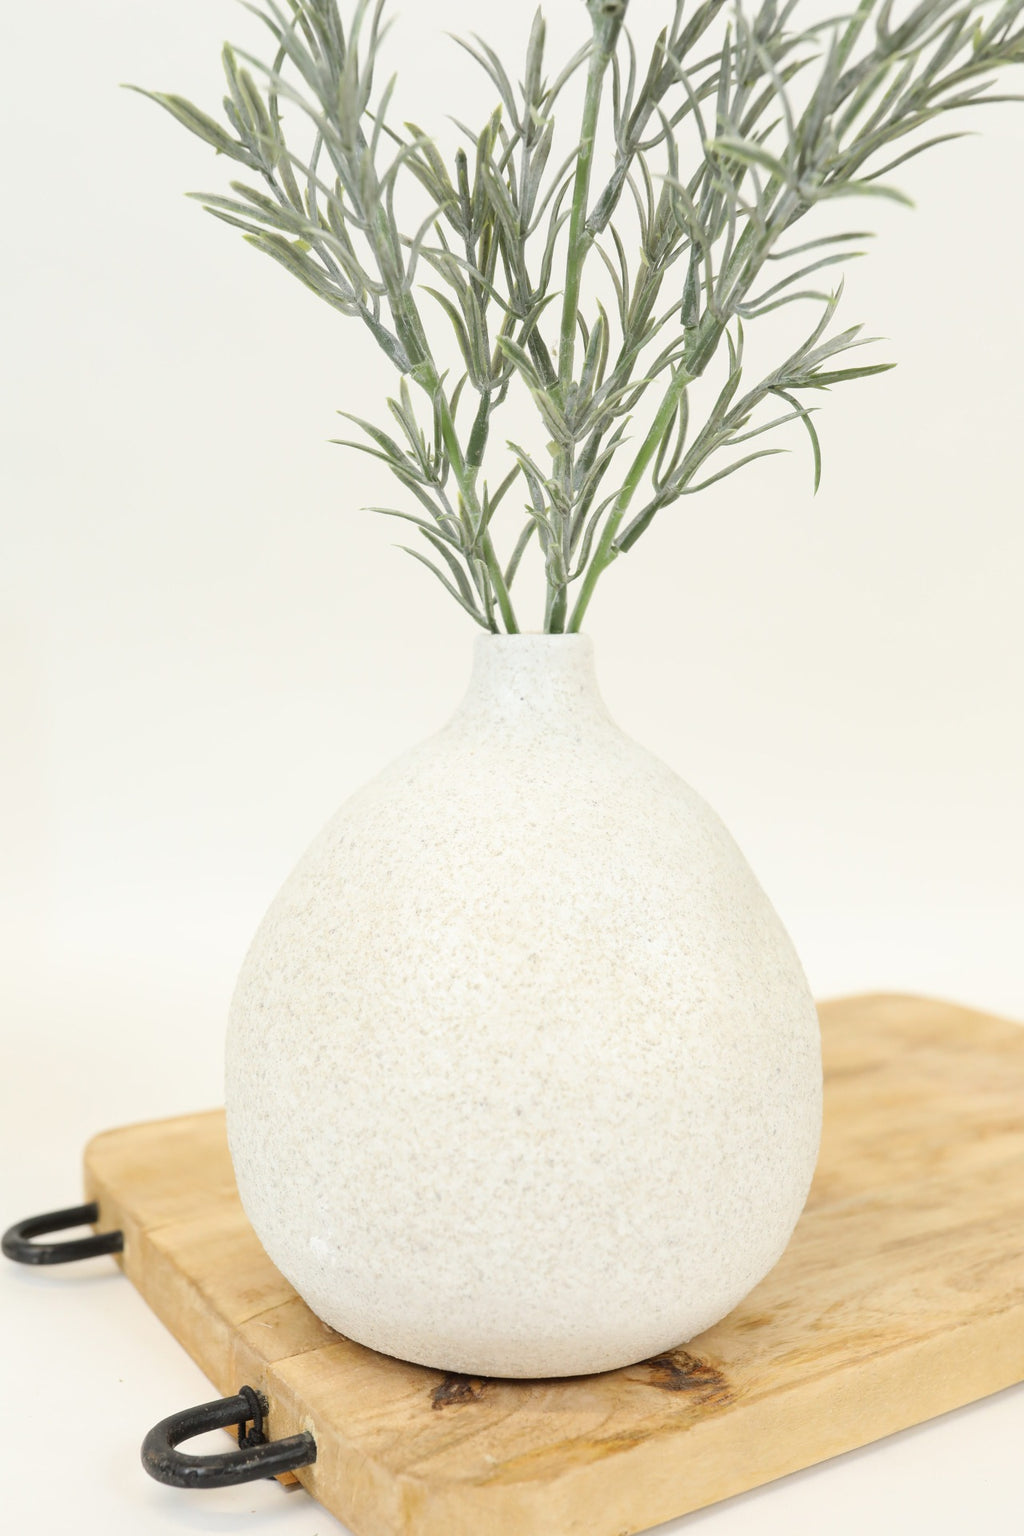 Speckled Terra-cotta Bubble Vase